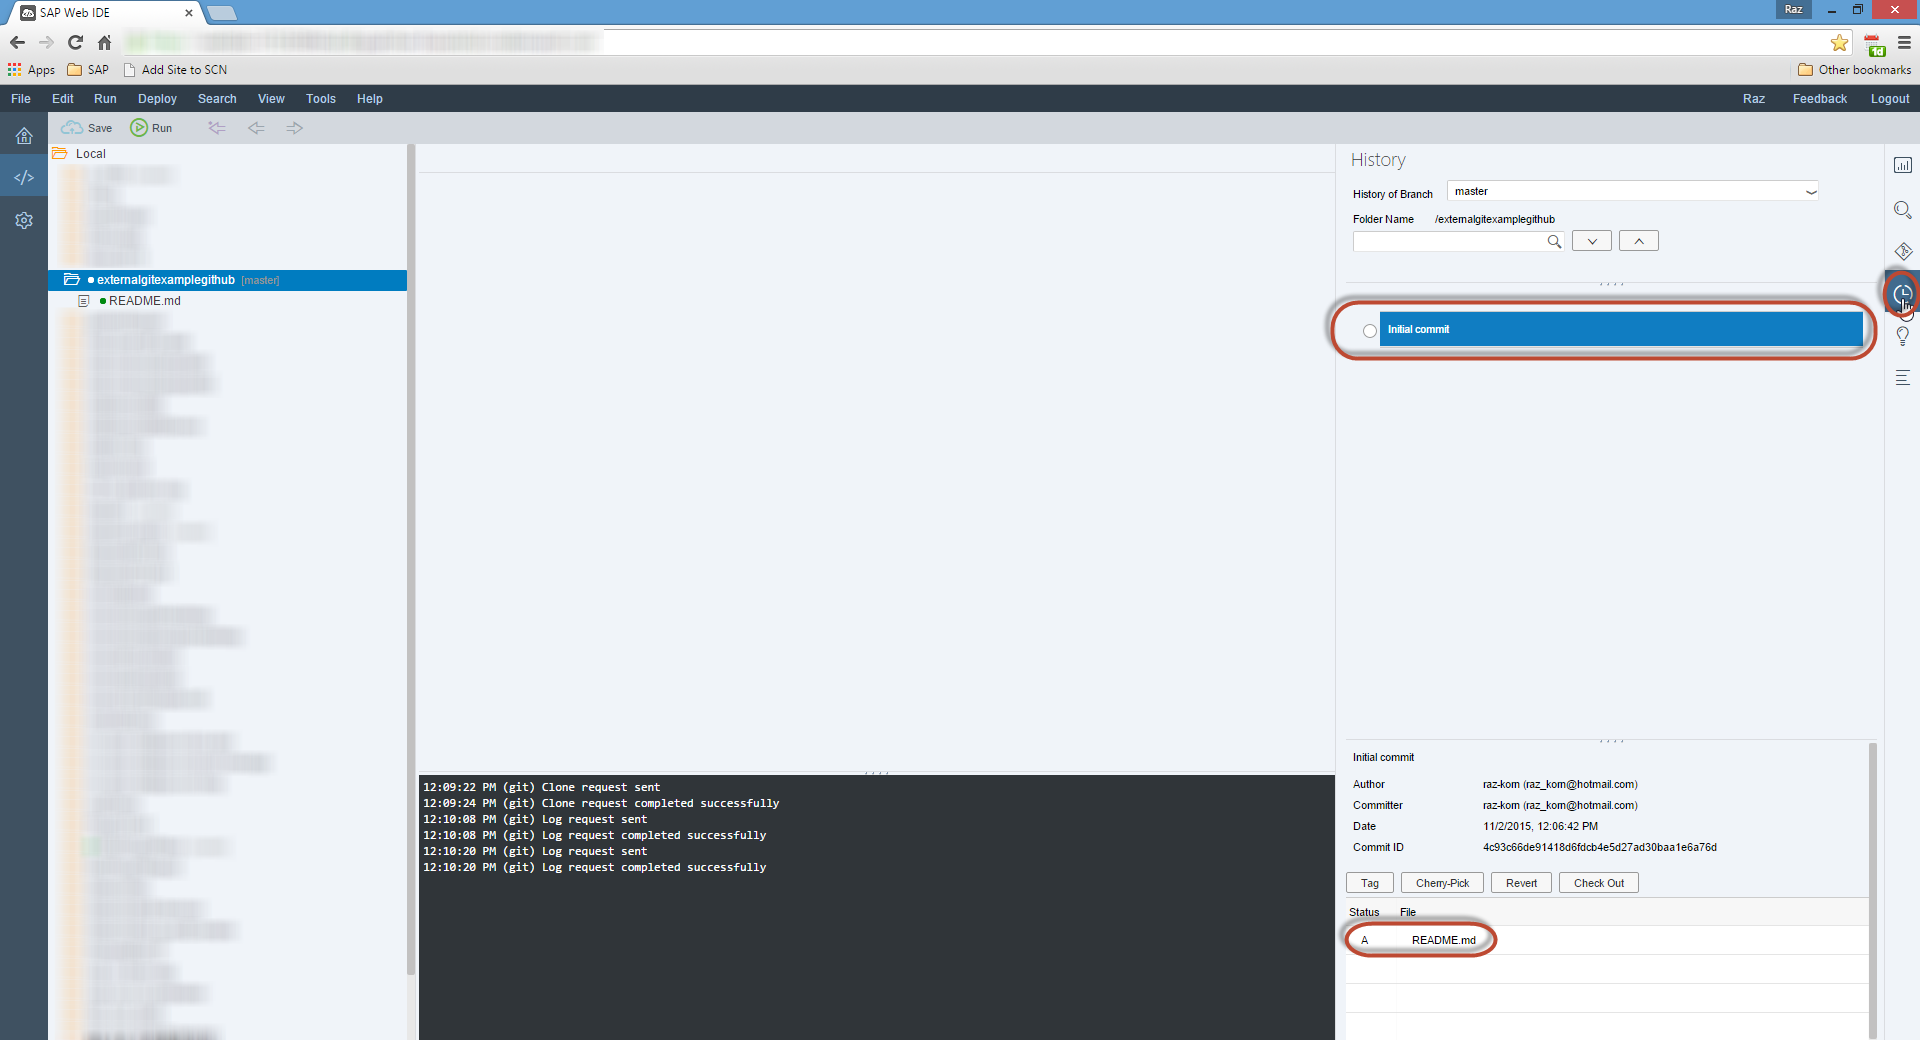 Want to use GitHub as your Project Repository with SAP Web IDE